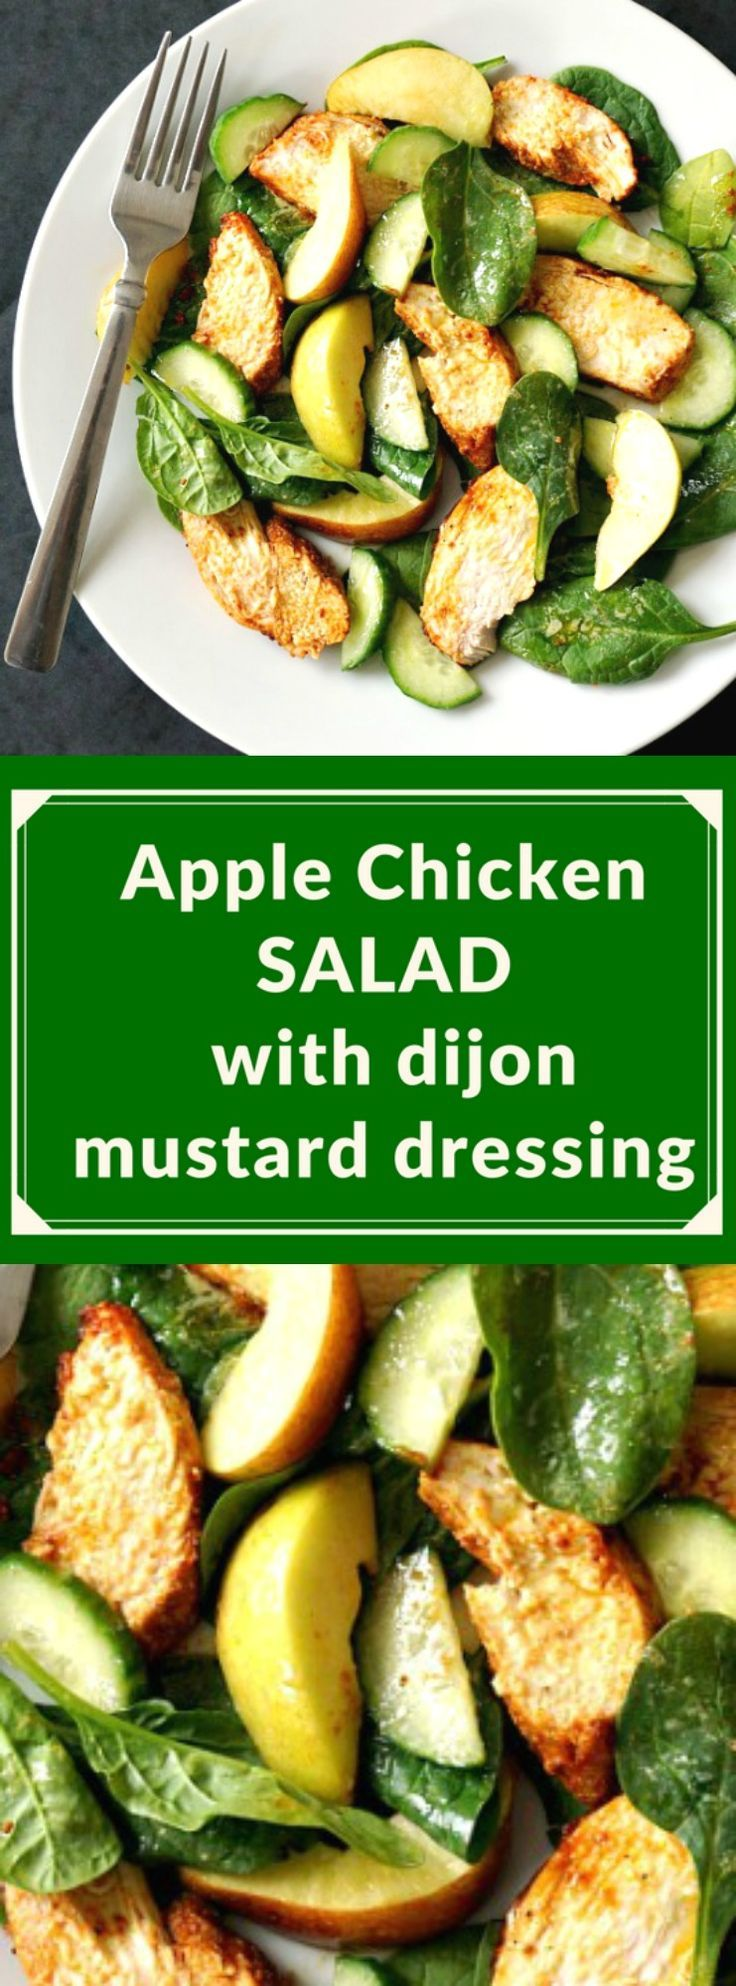 Apple chicken salad with dijon mustard dressing, a superb salad that is healthy, delicious and satisfying.